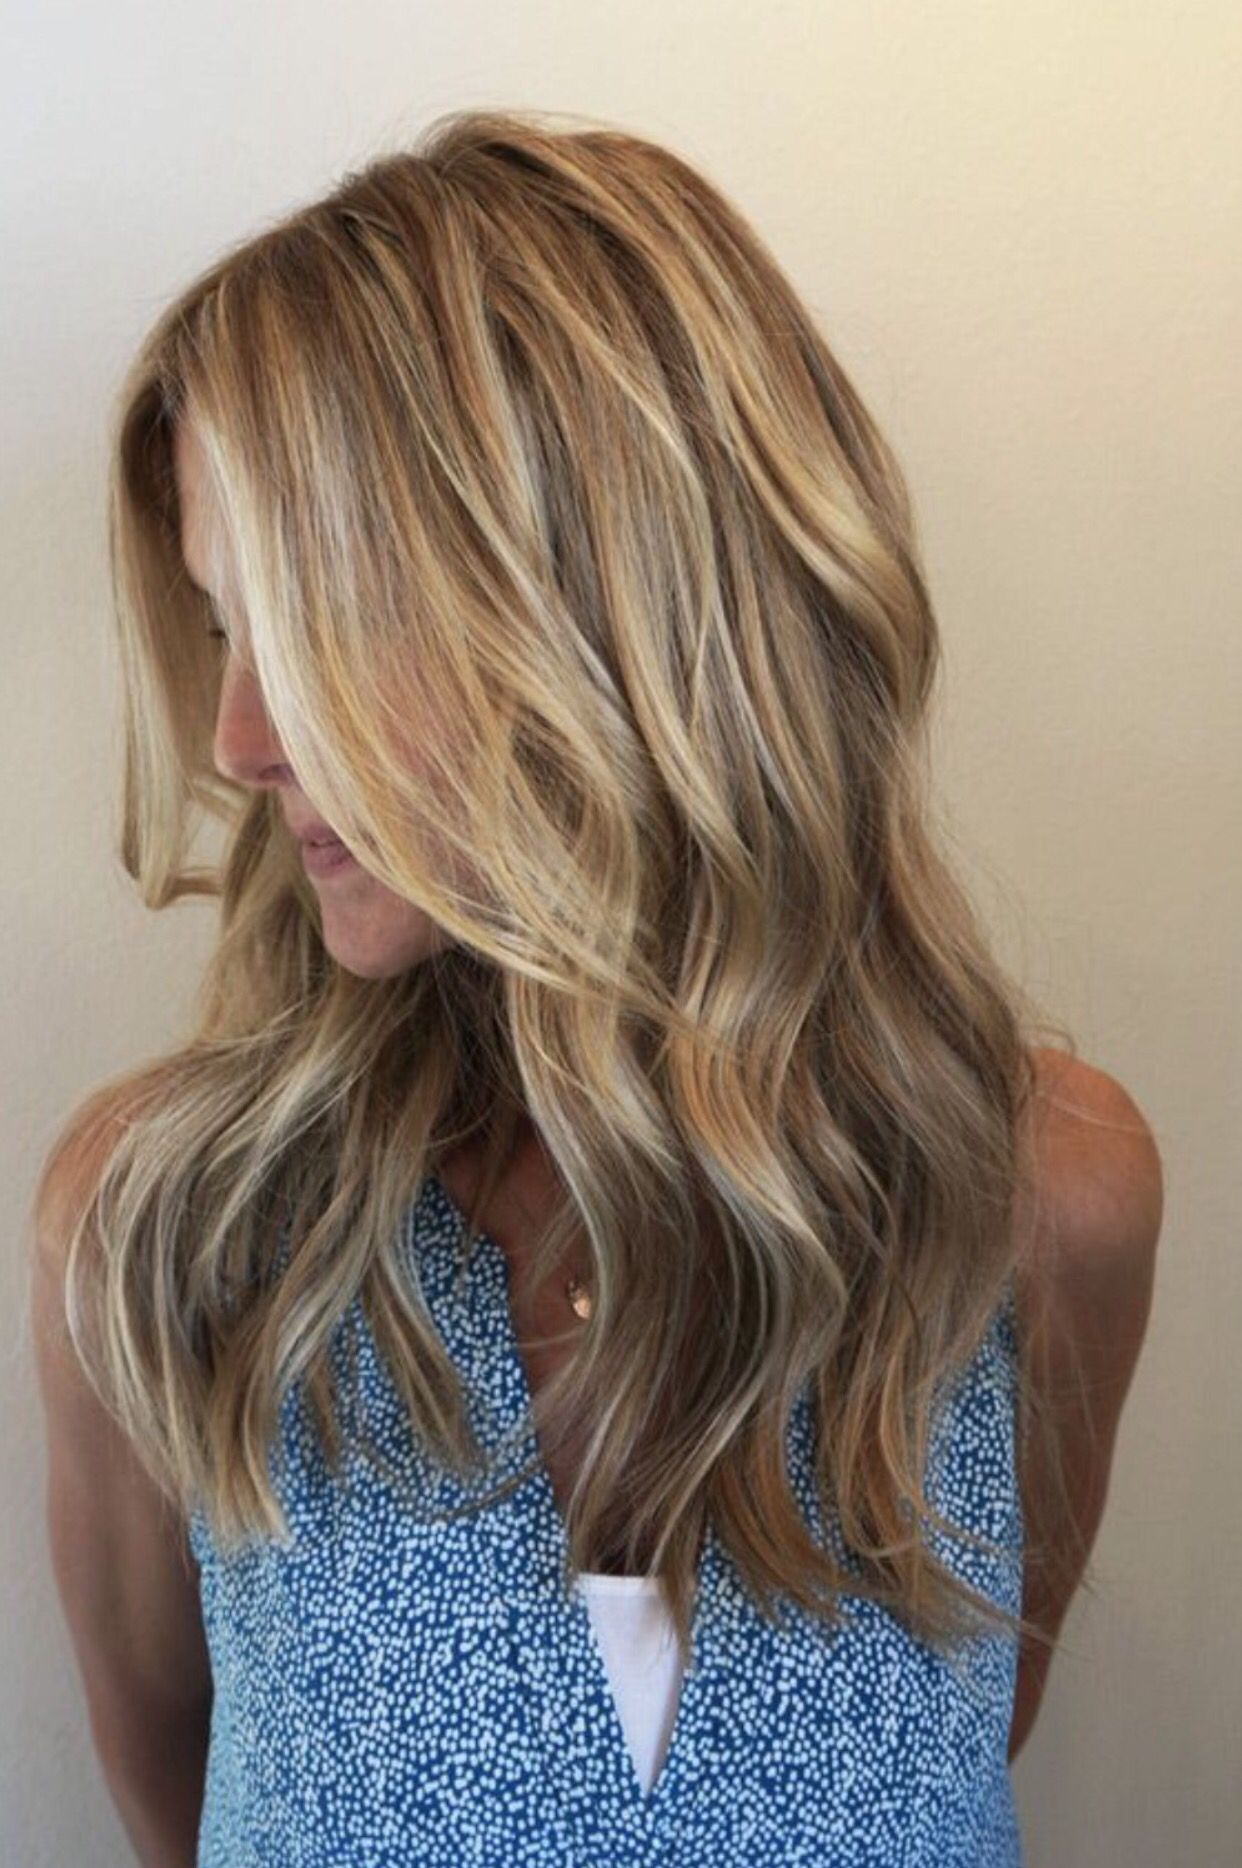 Pin by jean mulloy on hair options pinterest hair coloring hair